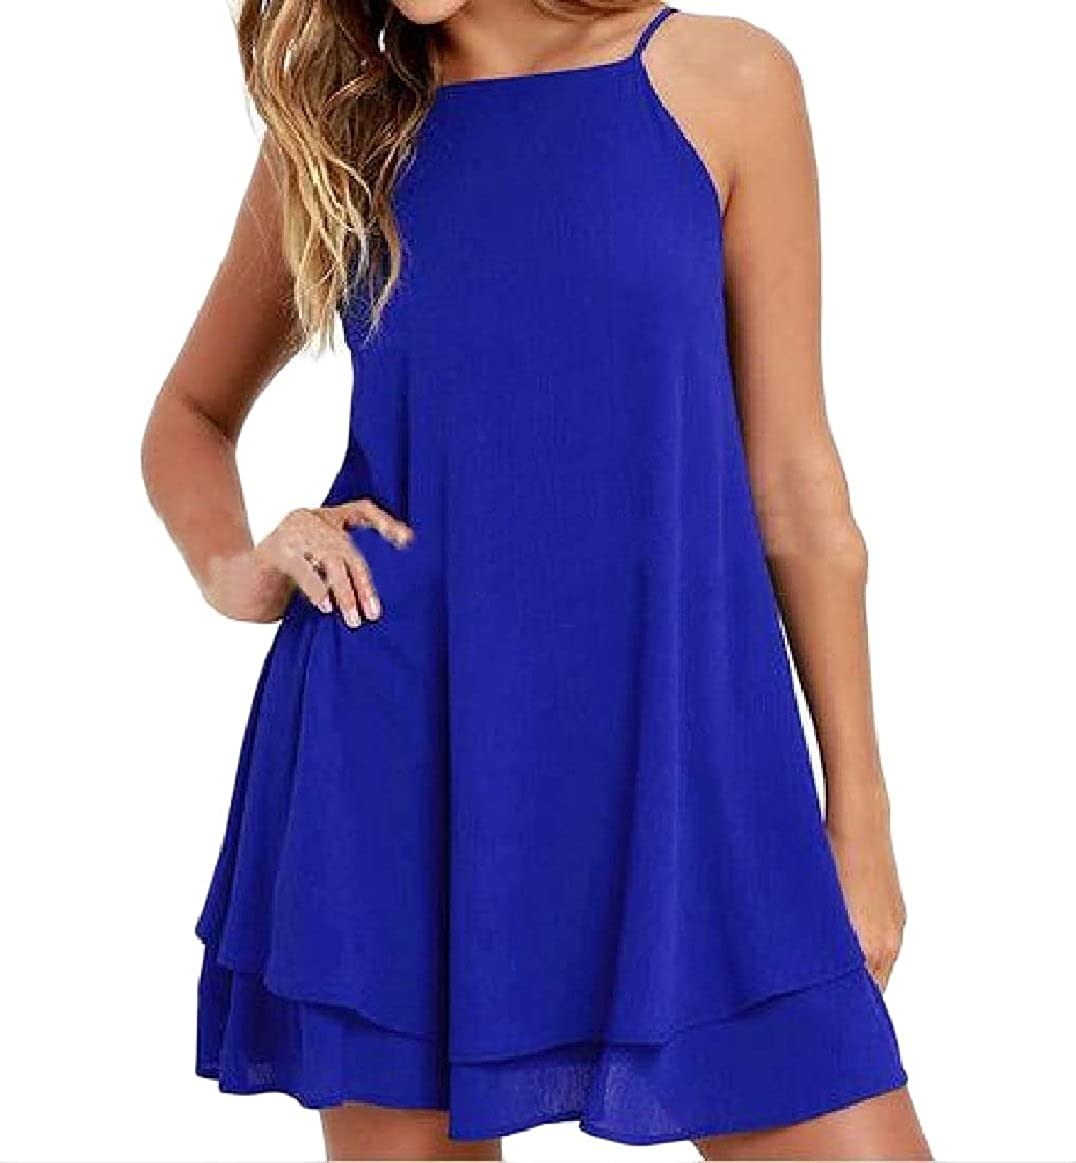 Comaba Womens Solid-Colored Sleeveless Summer Double-Layer Beach Dress